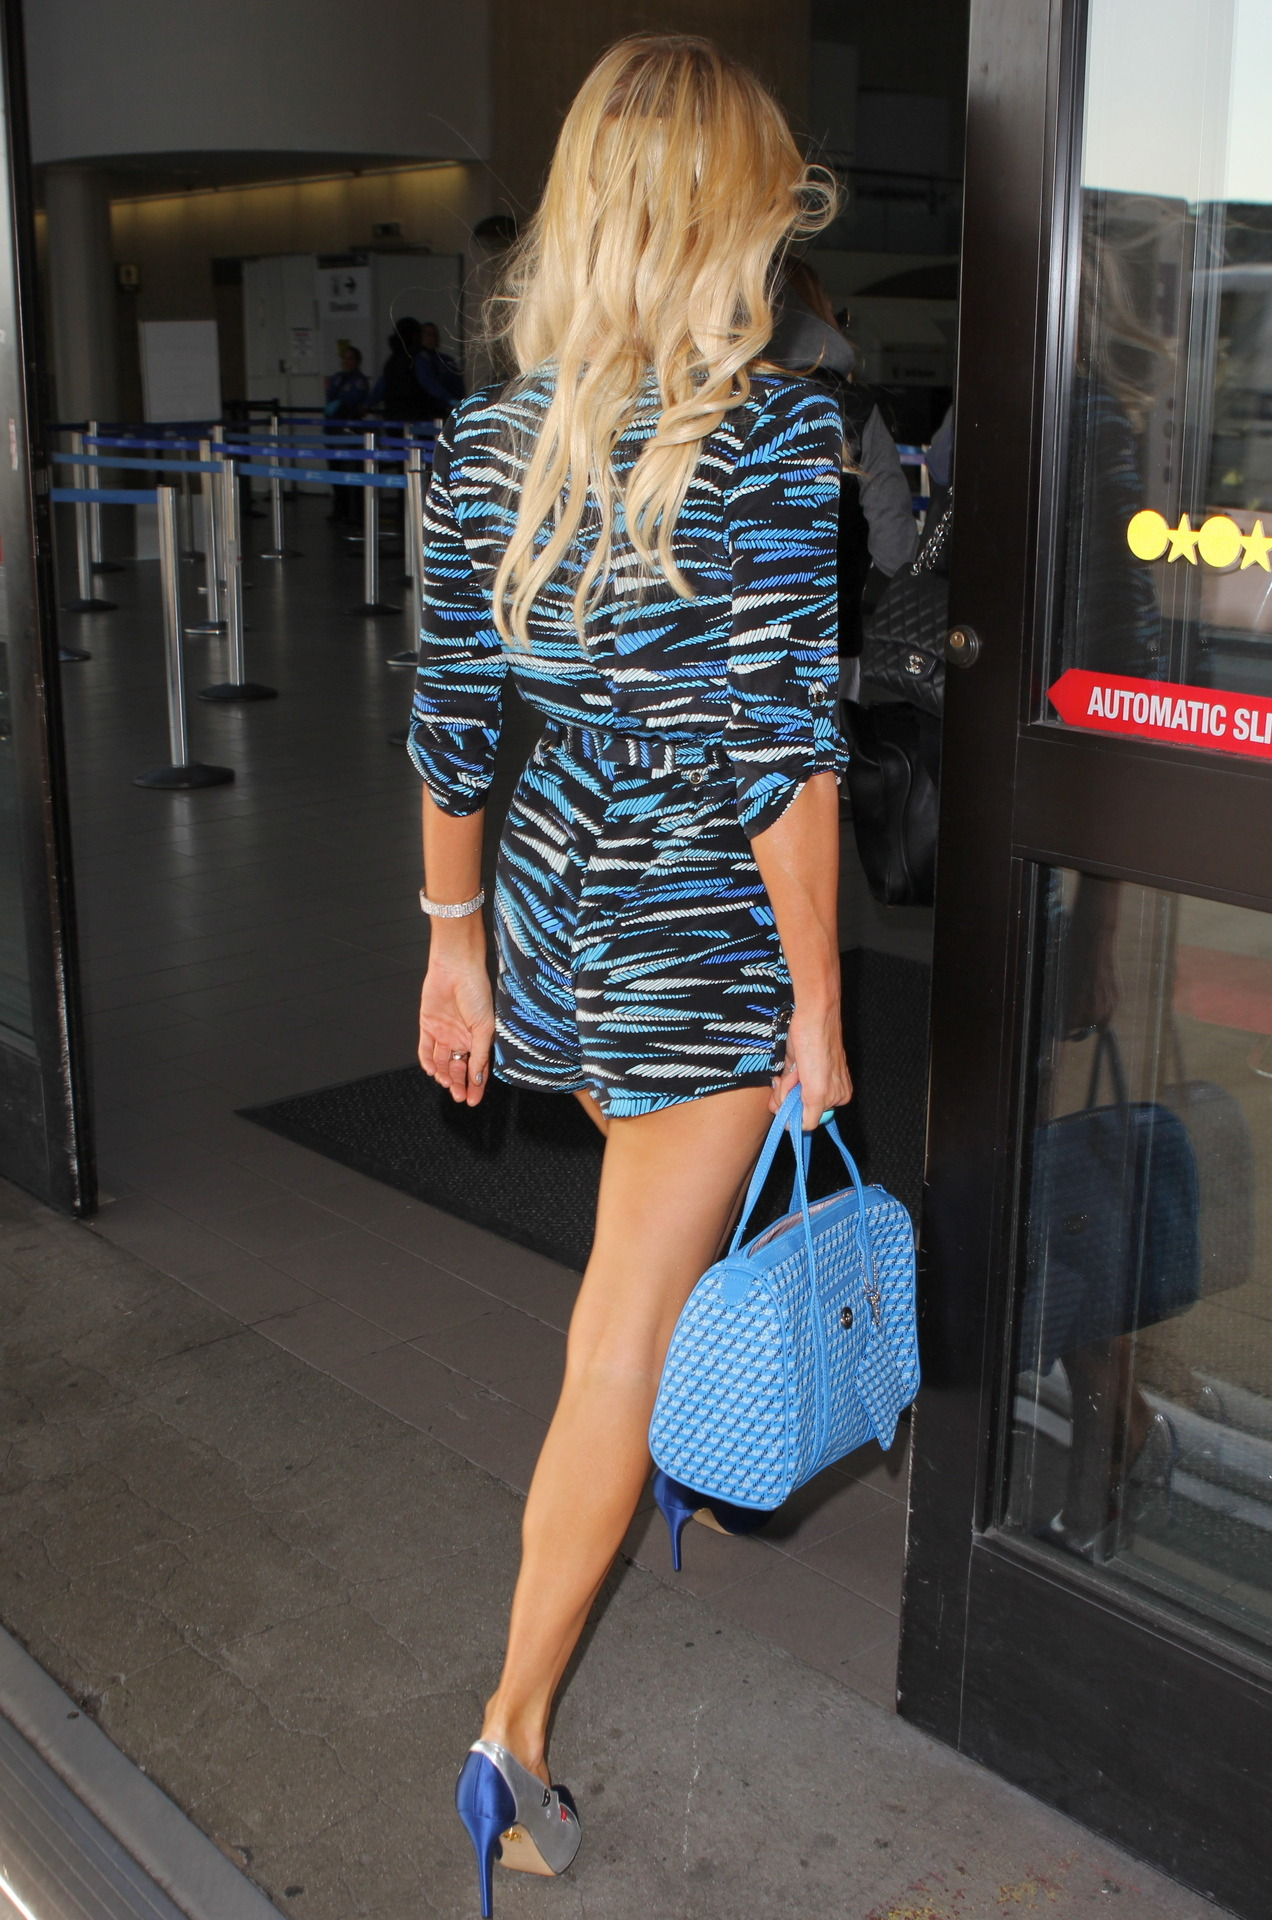 Paris Hilton arrives at LAAirport 11/2/12 More pics of Paris Hilton on SwaGirl.com